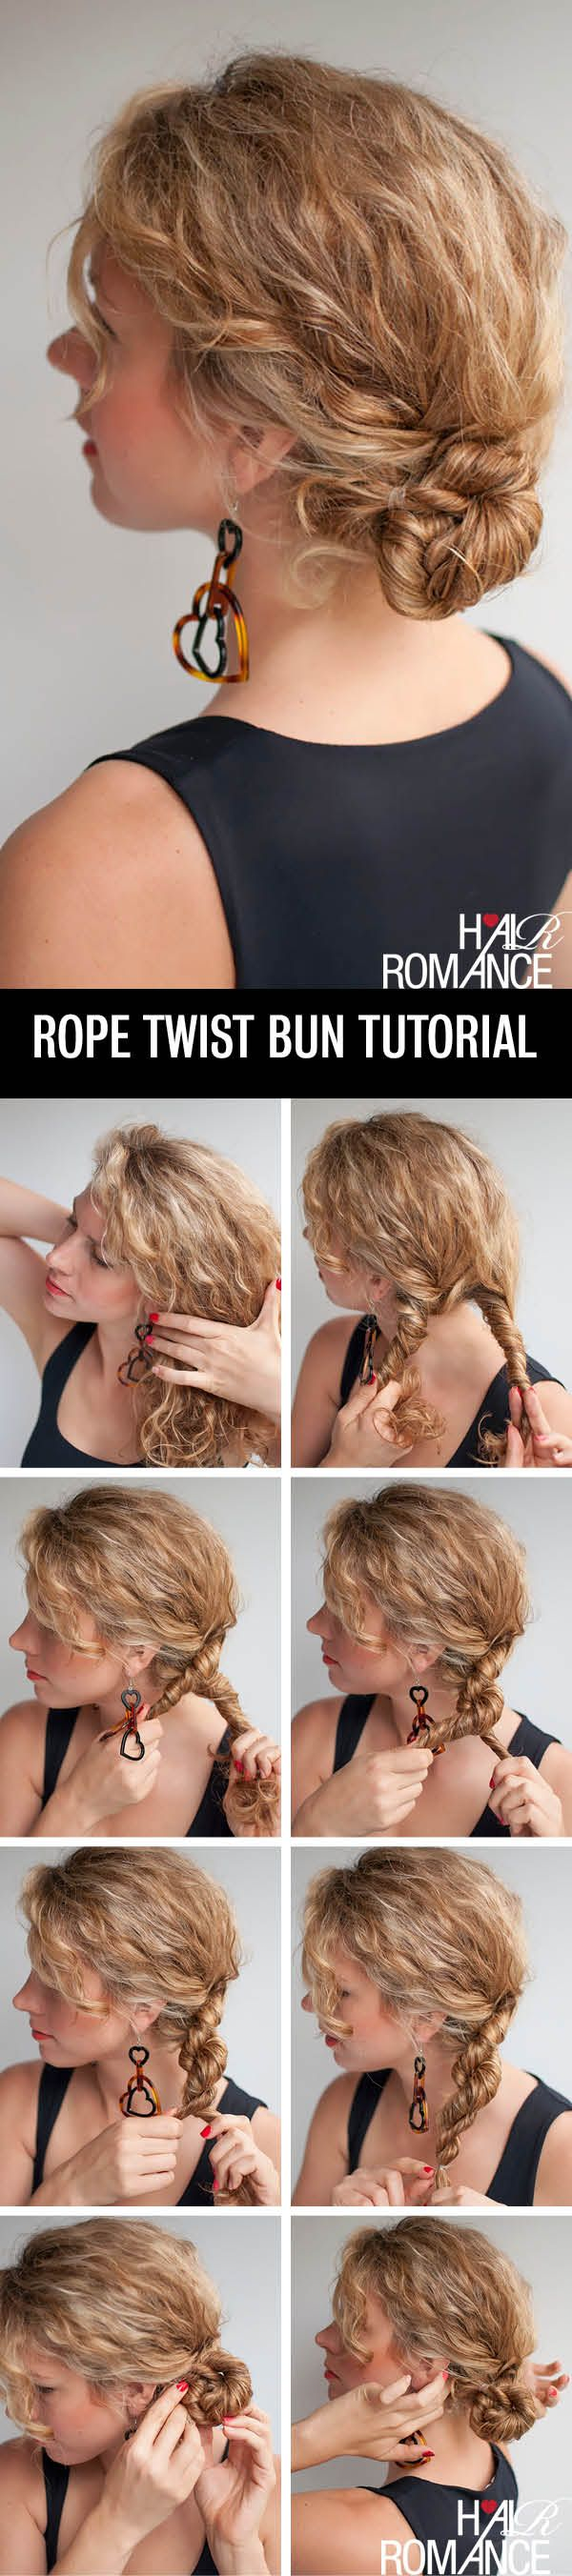 32 Easy Hairstyles For Curly Hair (for Short, Long & Shoulder Length Hair) - Hairstyles Weekly